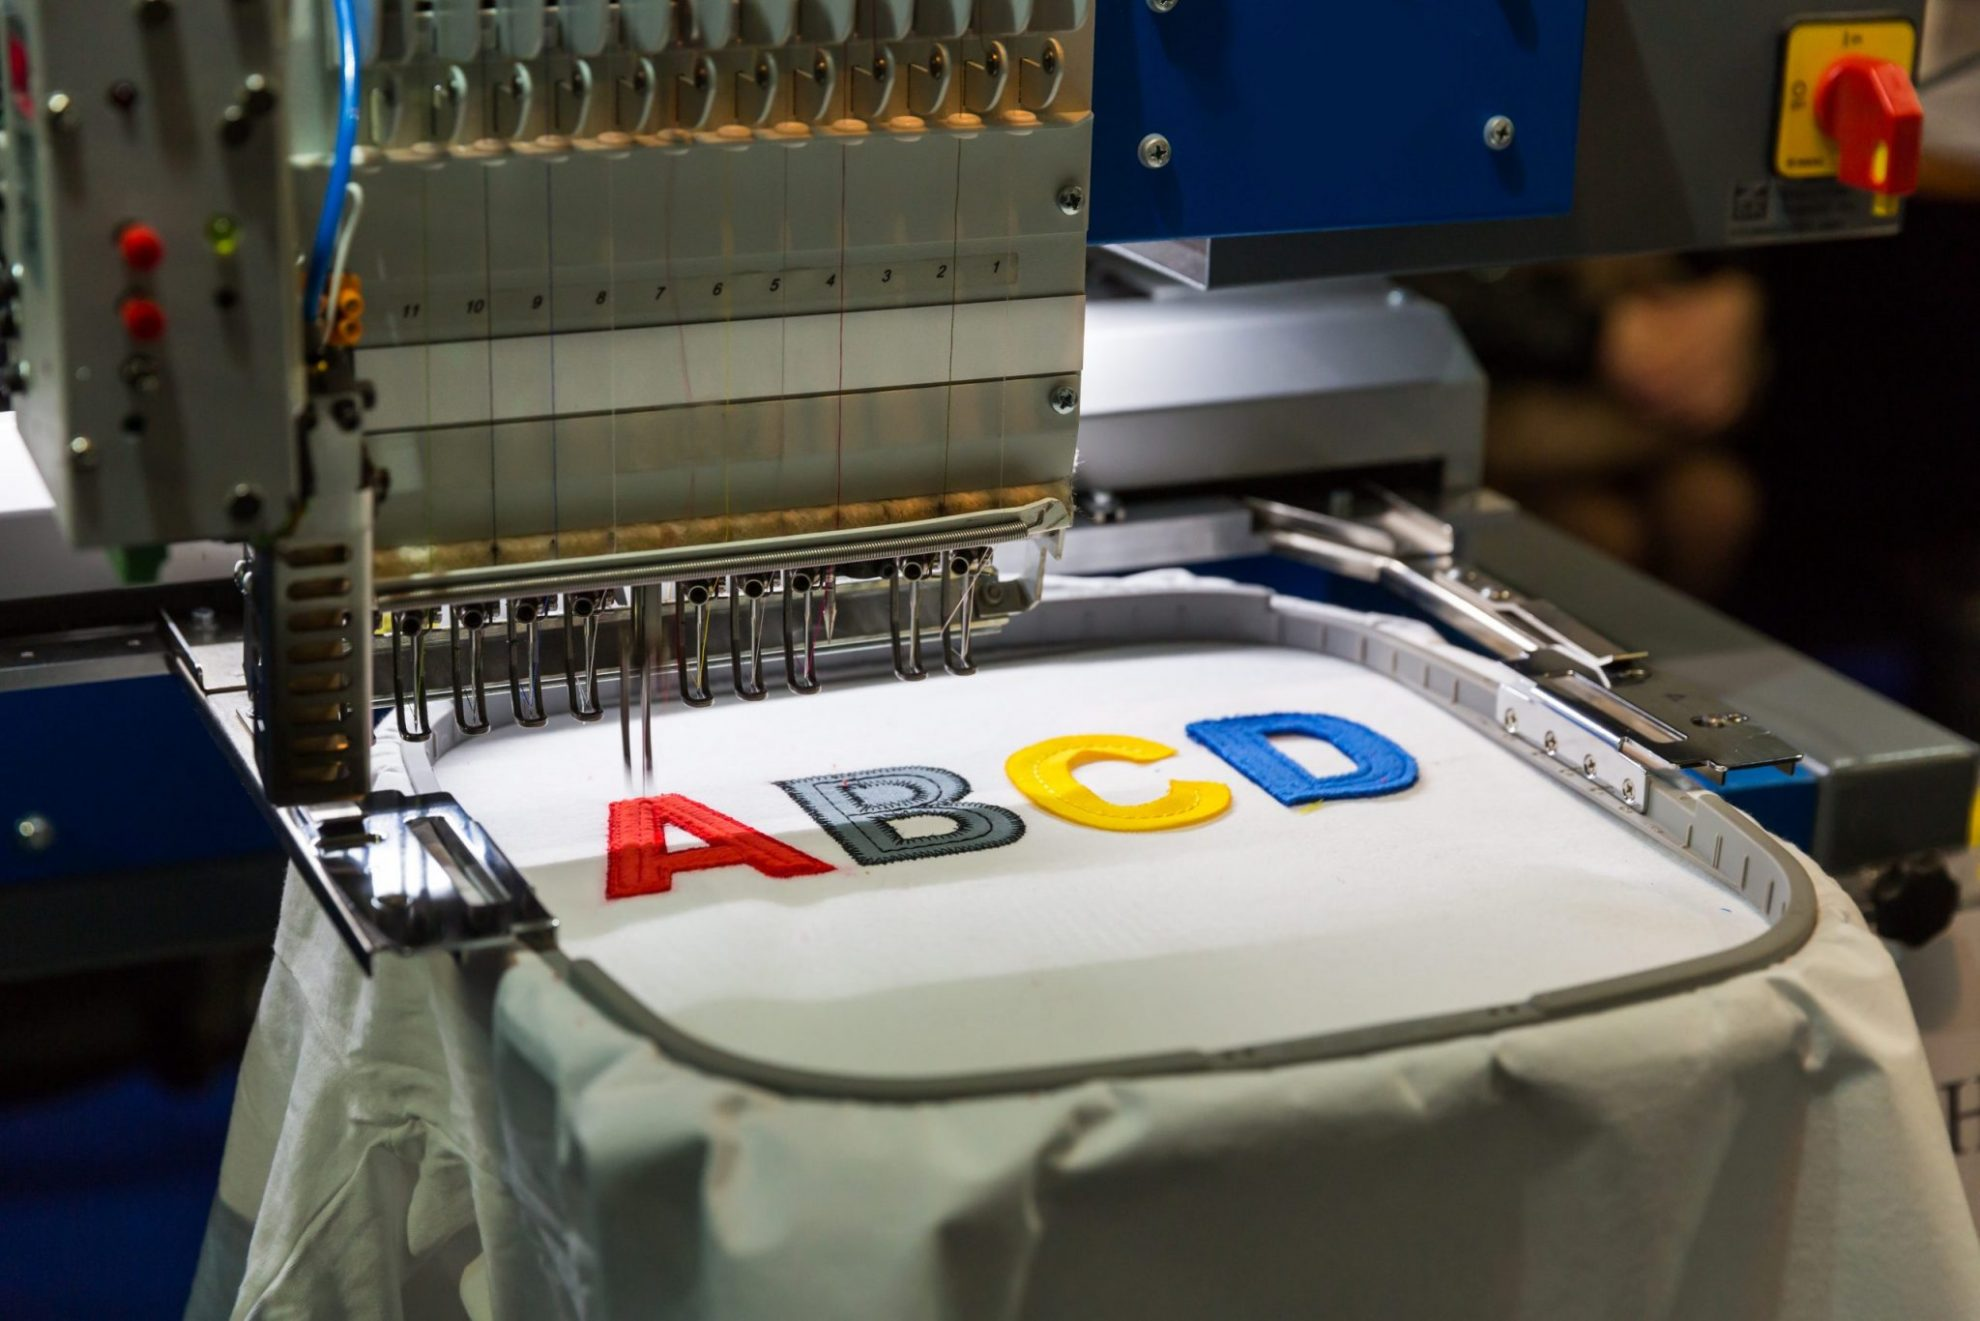 professional sewing machine embroidery letters scaled - Servicios